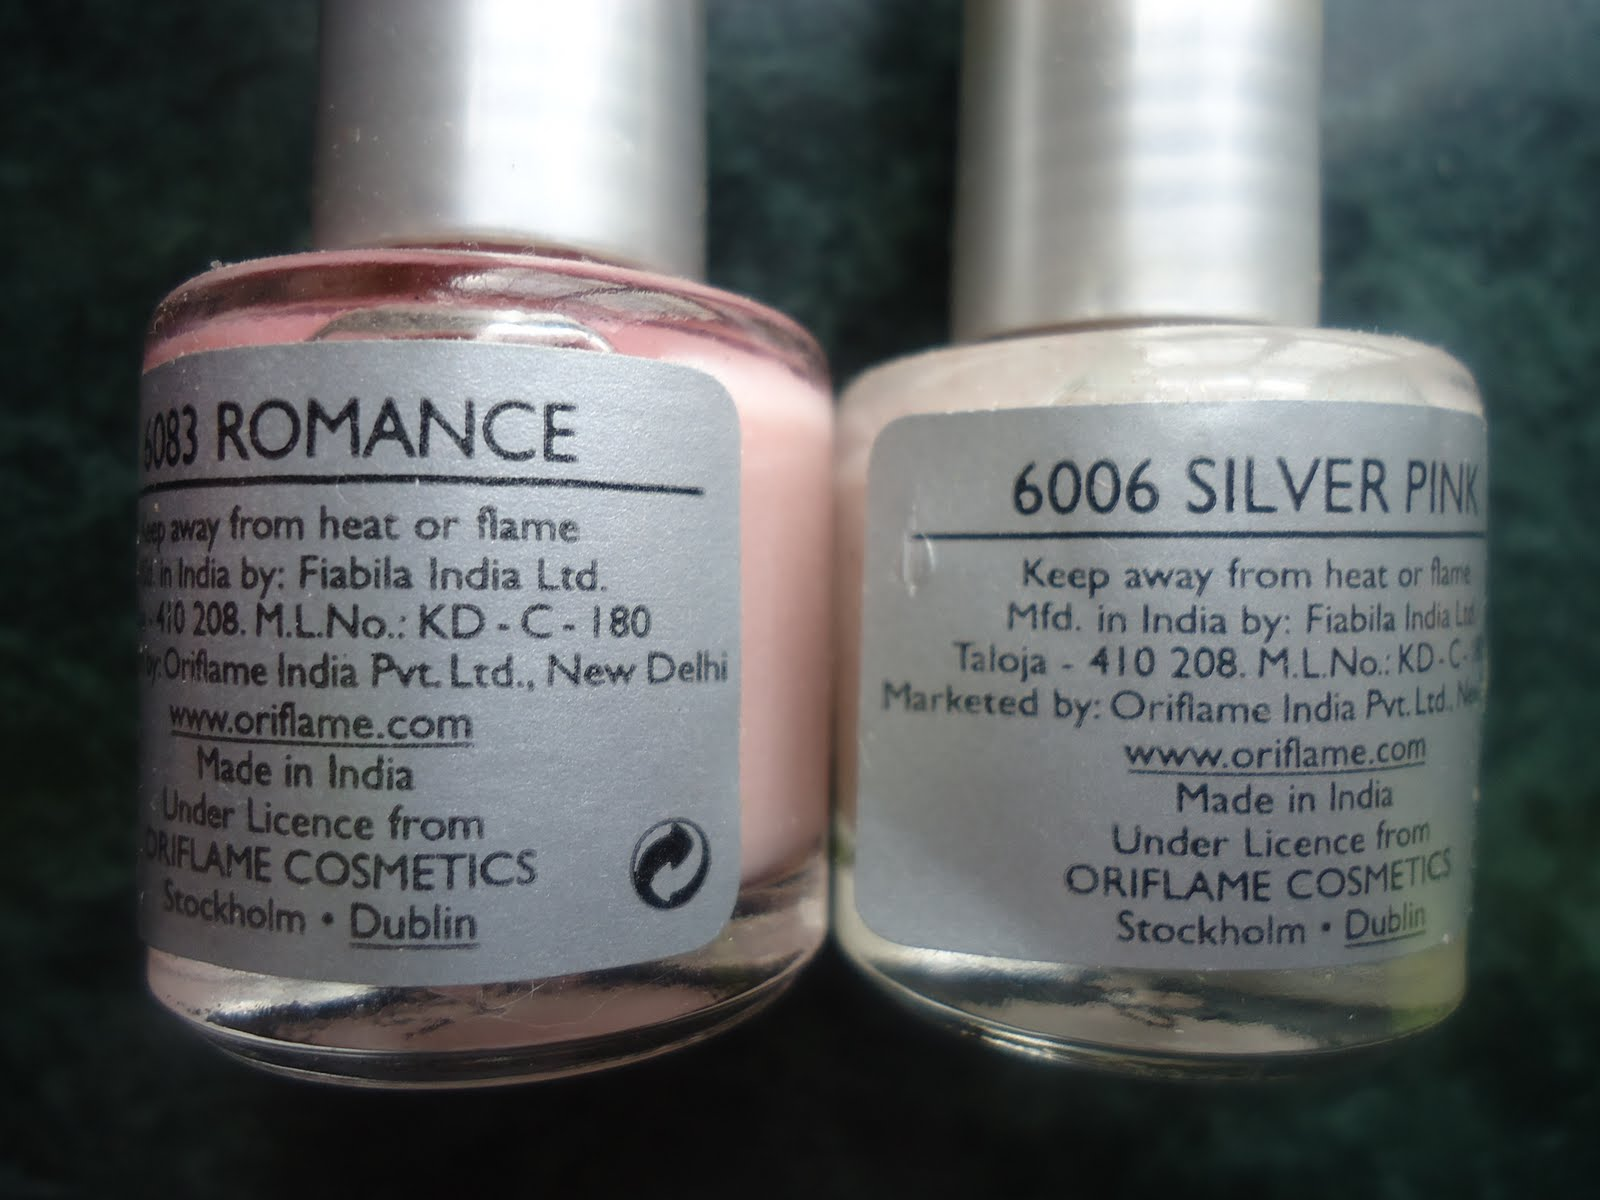 Oriflame Visions Nail Polish Review, Swatches | New Love - Makeup